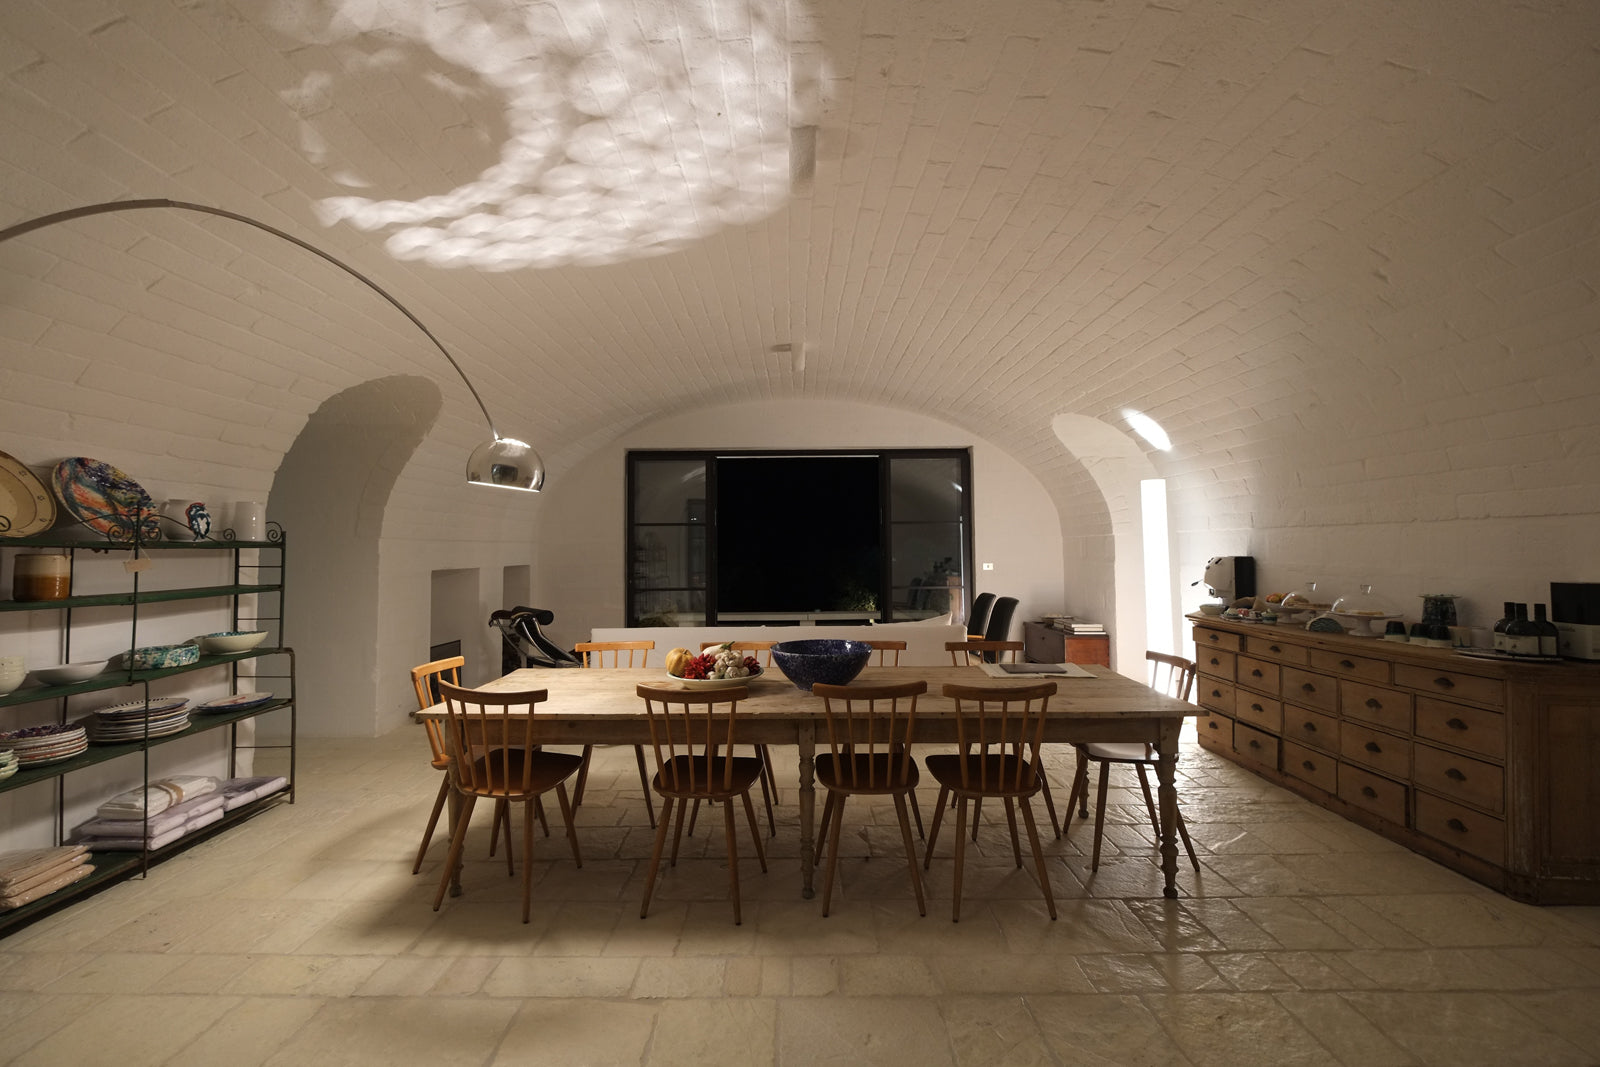 Arco at Masseria Moroseta. Buy the original Arco floor light by Flos from Abitalia South Coast in Poole online